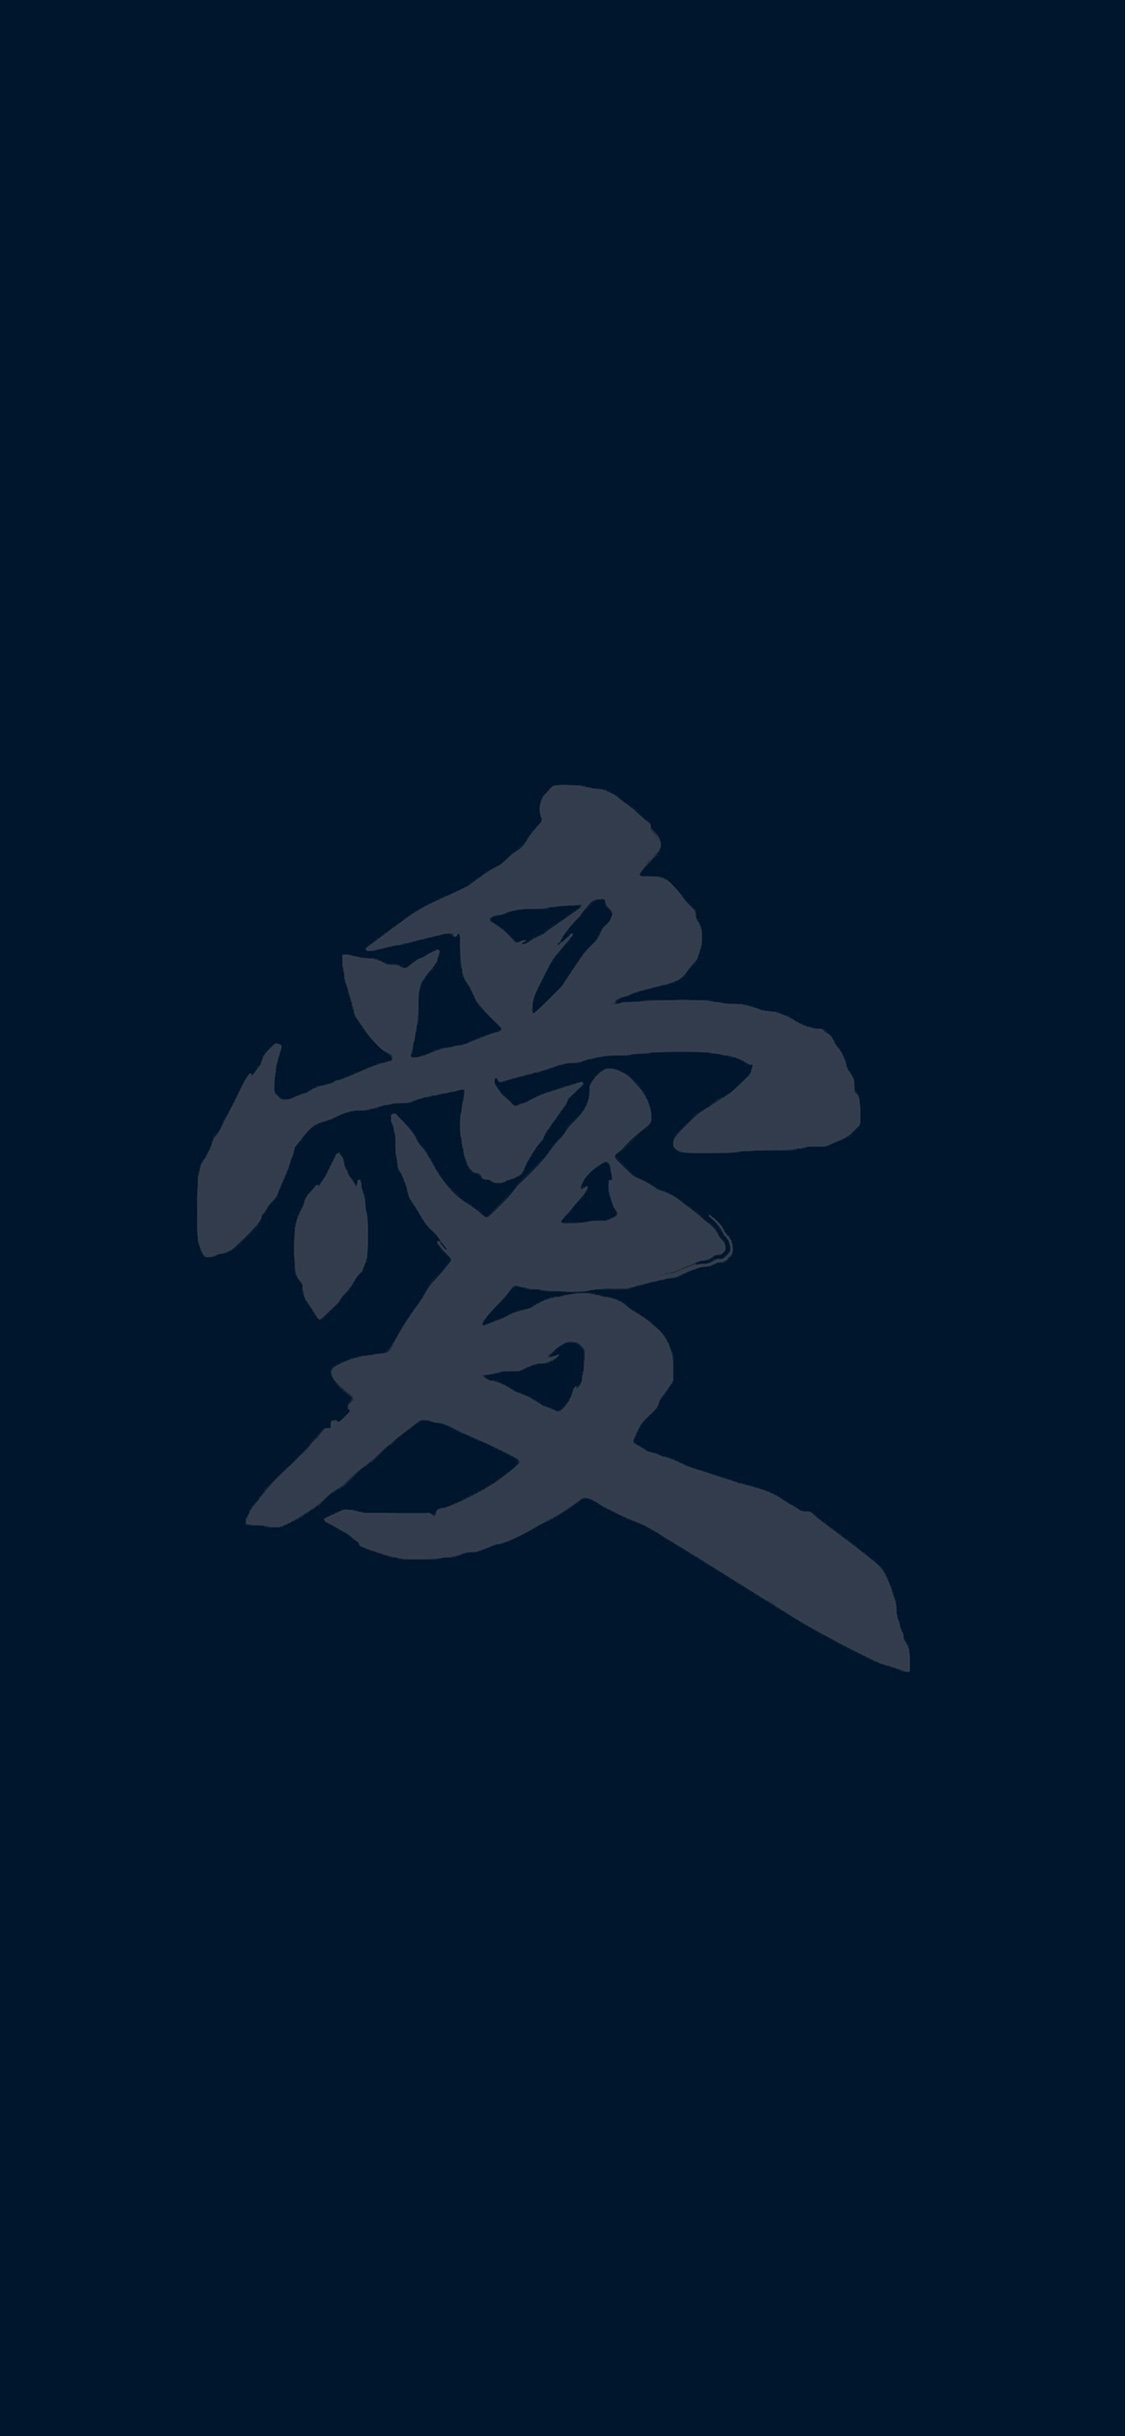 Chinese Symbols Wallpaper 57 Images